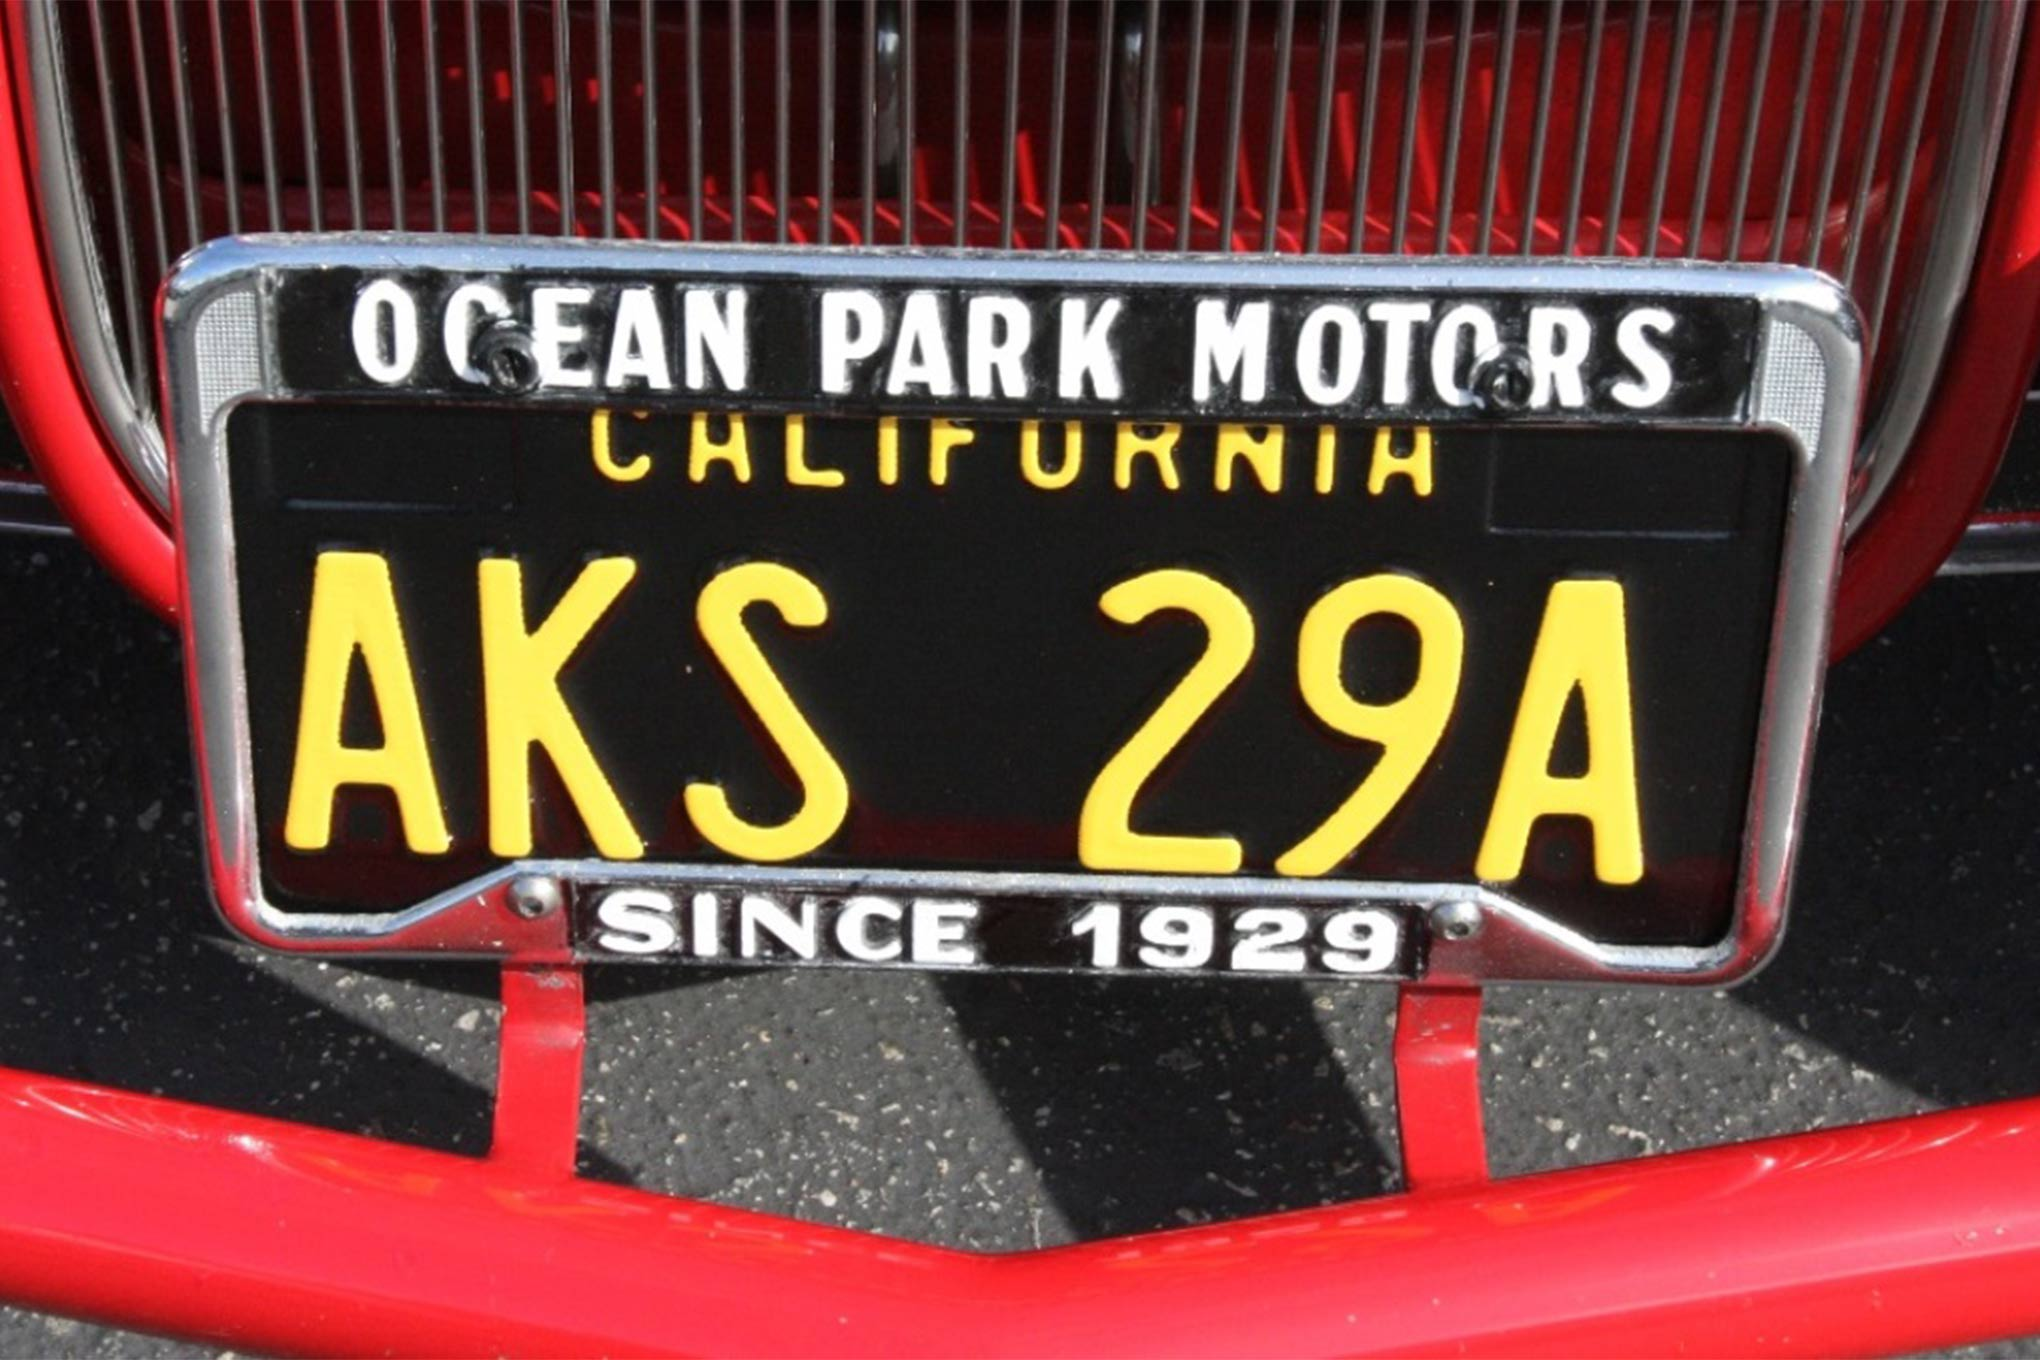 Our buddy Alan K ordered a personalized combination of letters and numbers for the brand new '60s style plates on his genuine '60s survivor 1929 Model A.